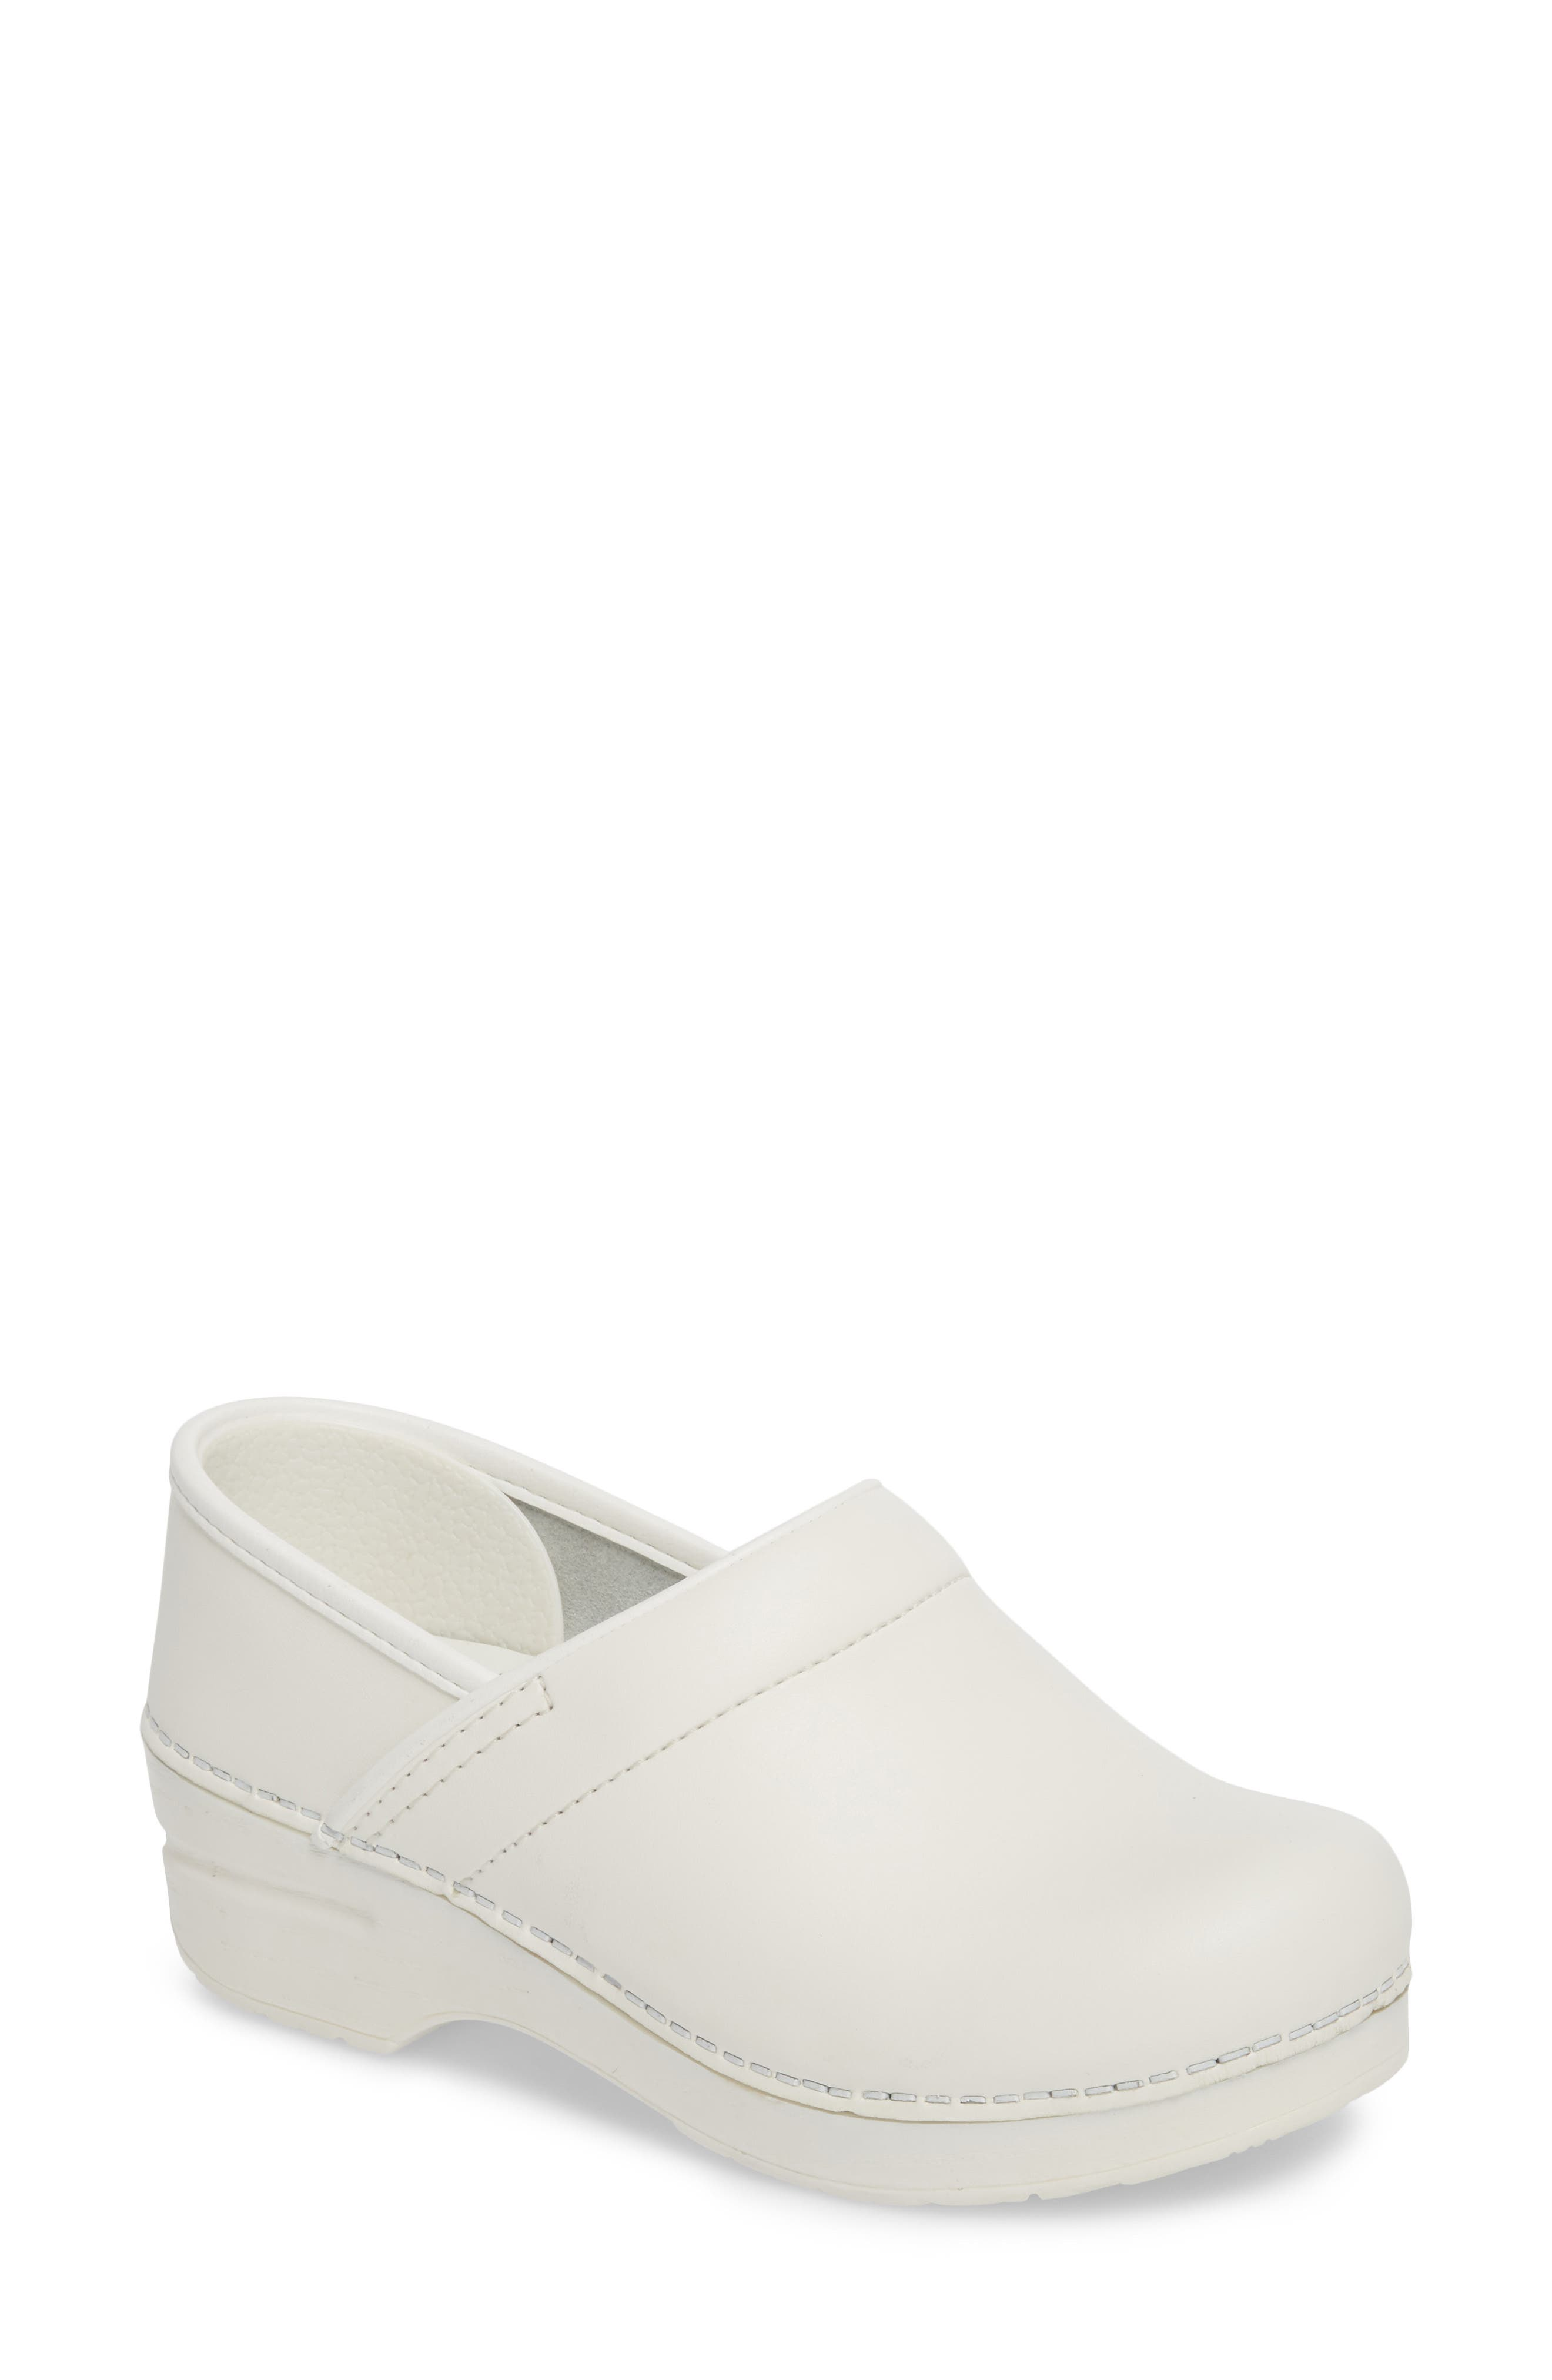 Wide Pro Clog,                             Main thumbnail 1, color,                             White Leather